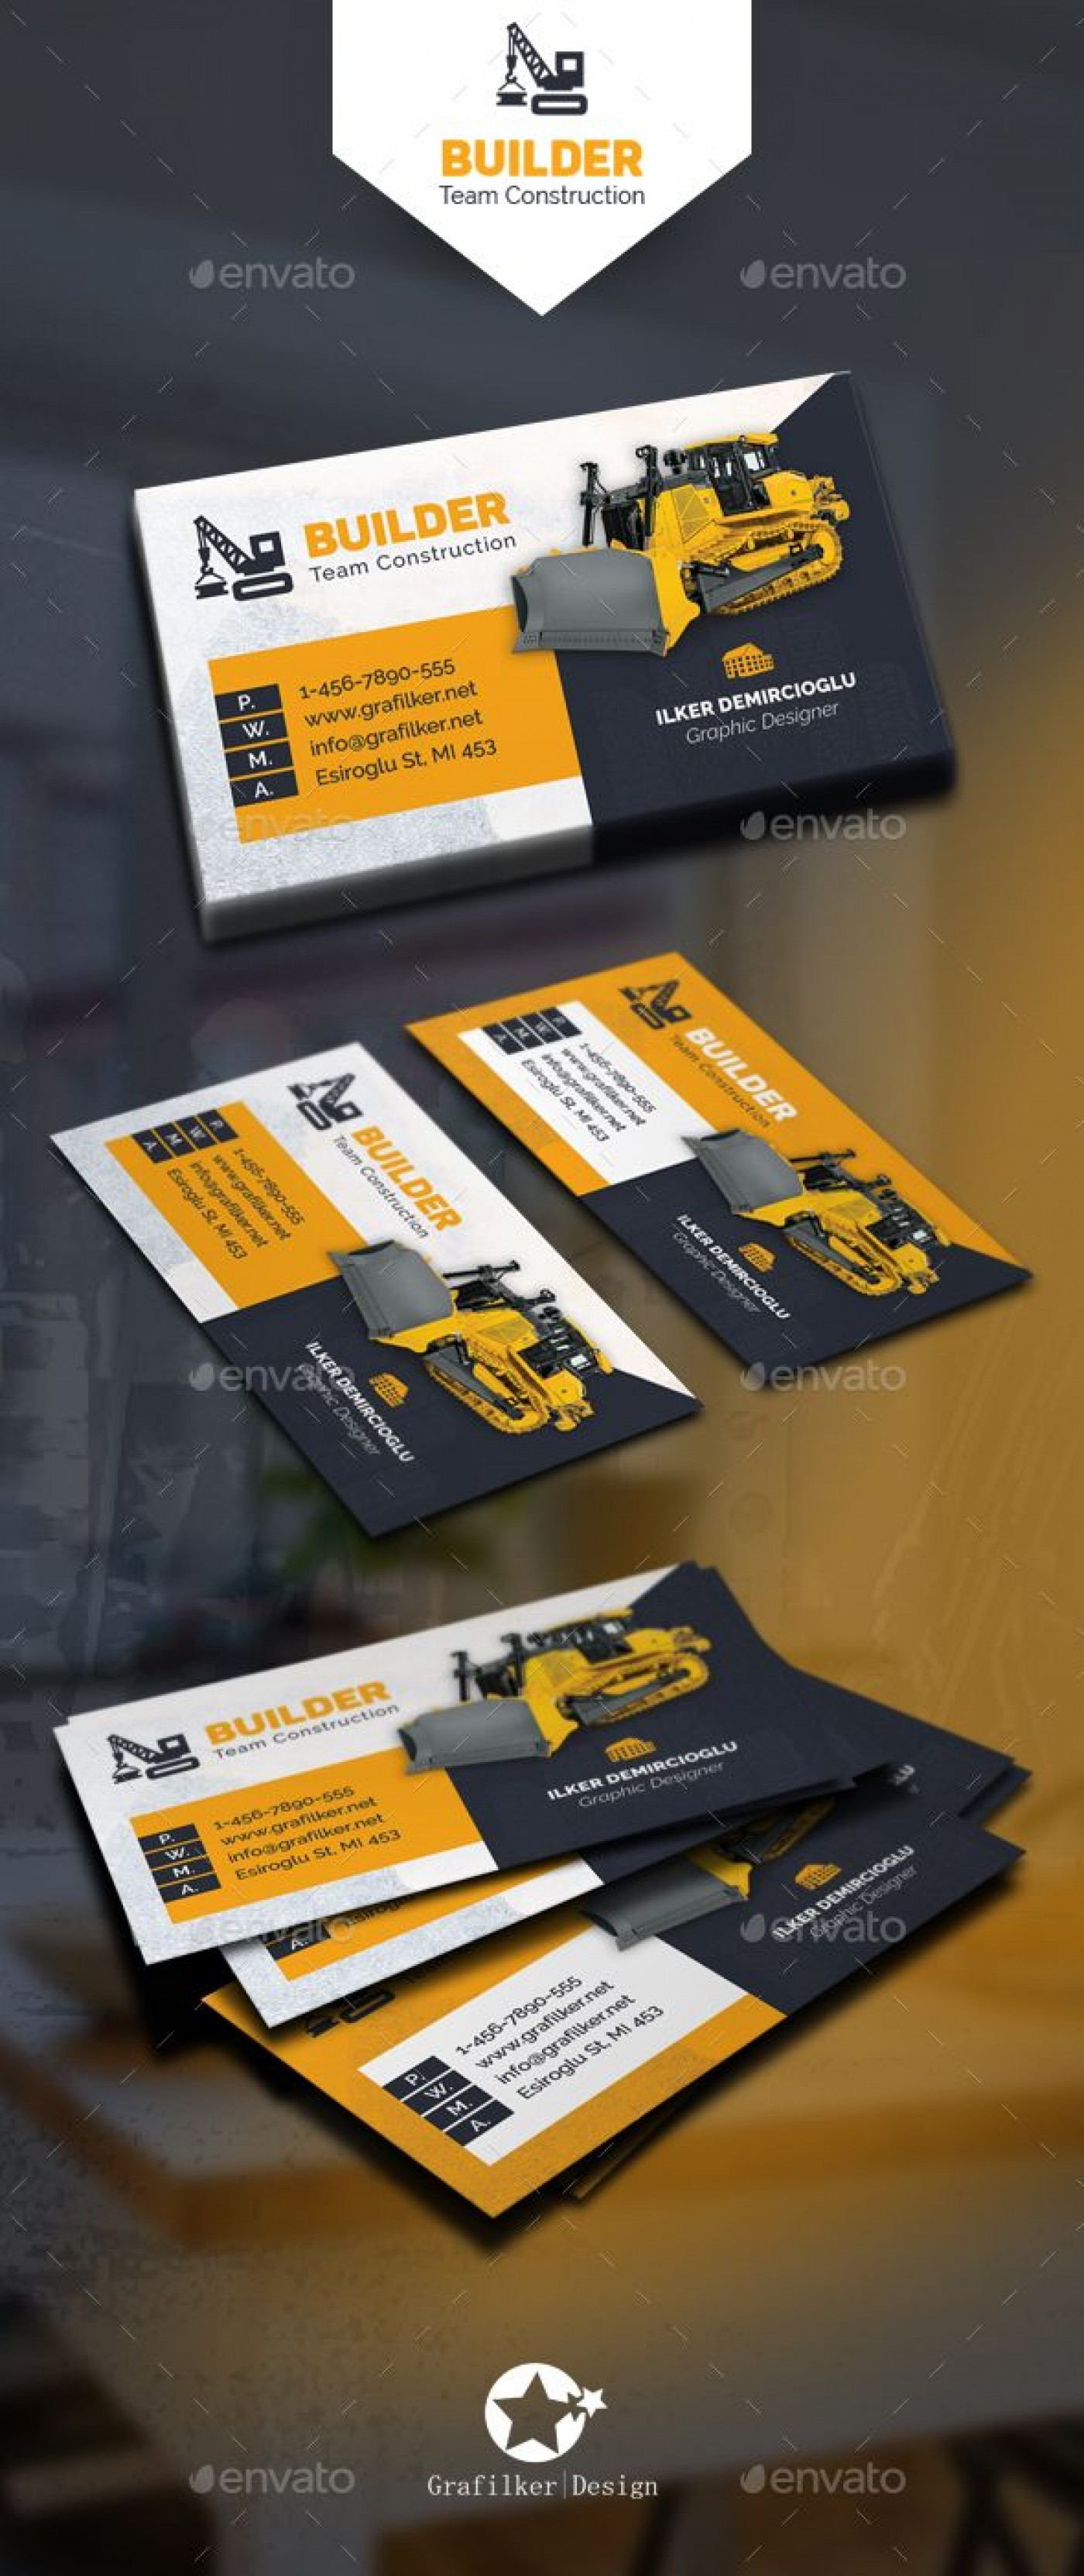 000 Magnificent Construction Busines Card Template Picture  Company Visiting Format Word For Material1400